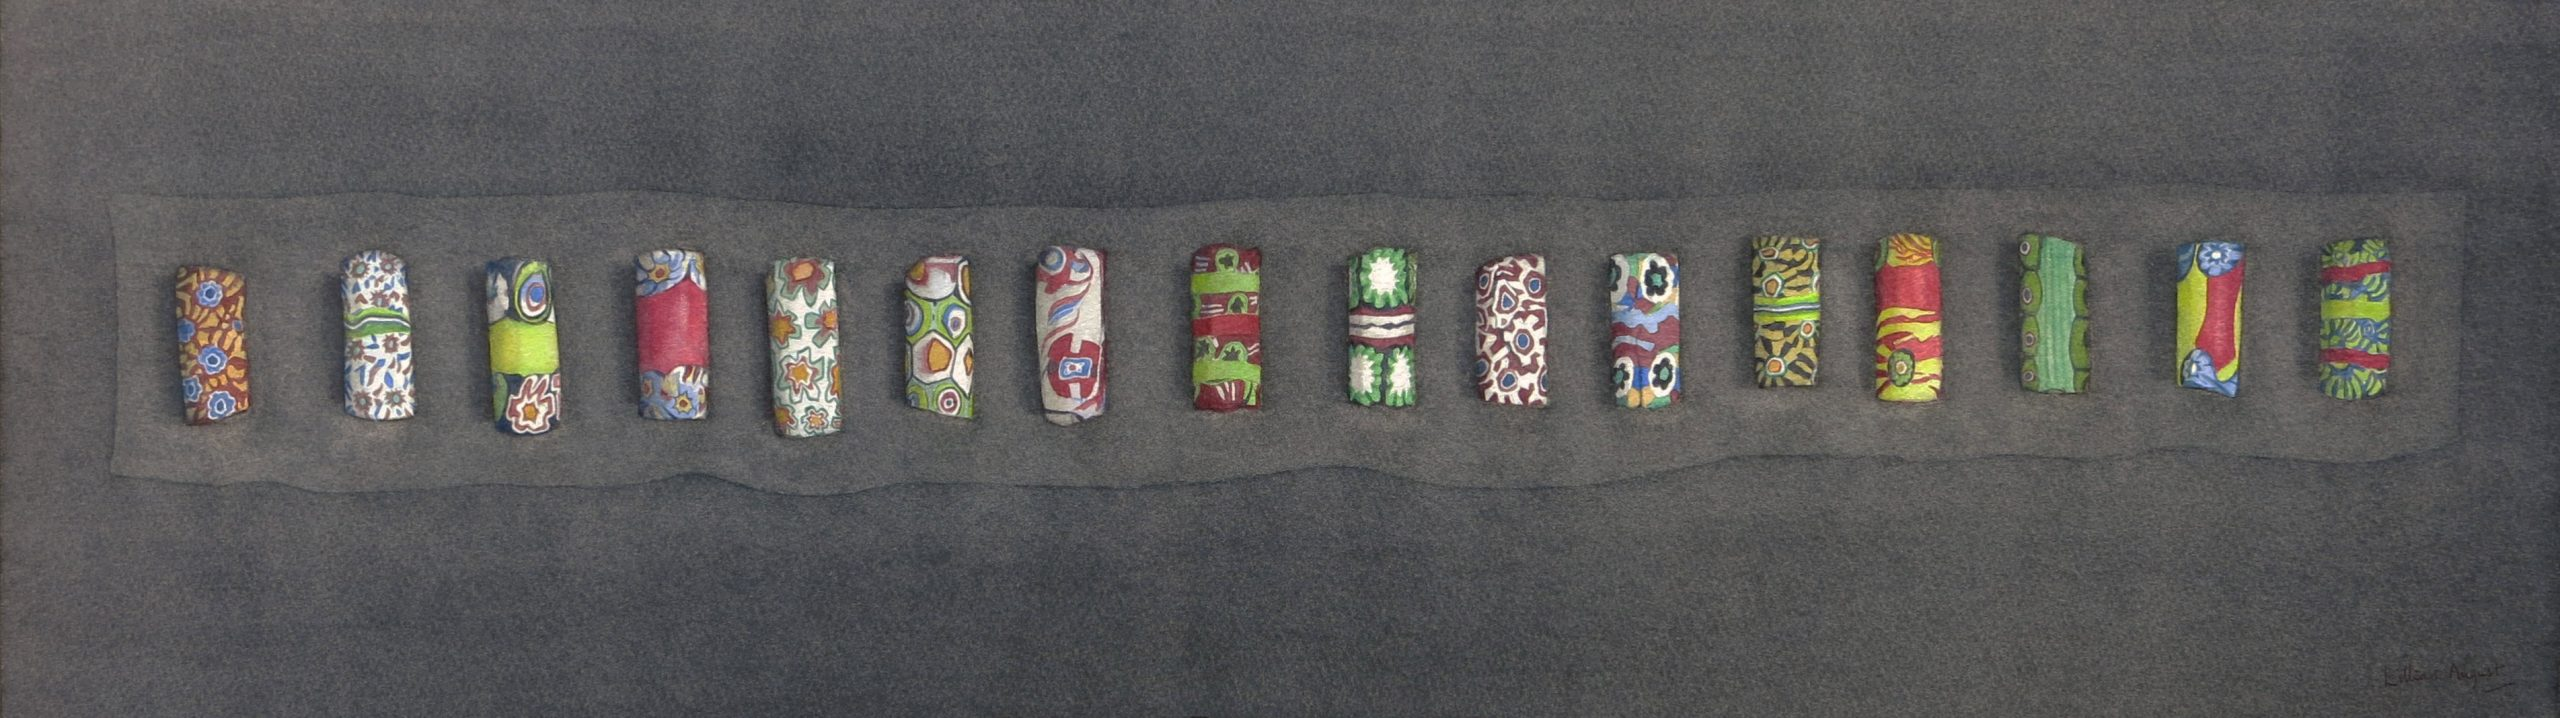 Lillias August Trade beads, Watercolour on paper 19 x 71 cm